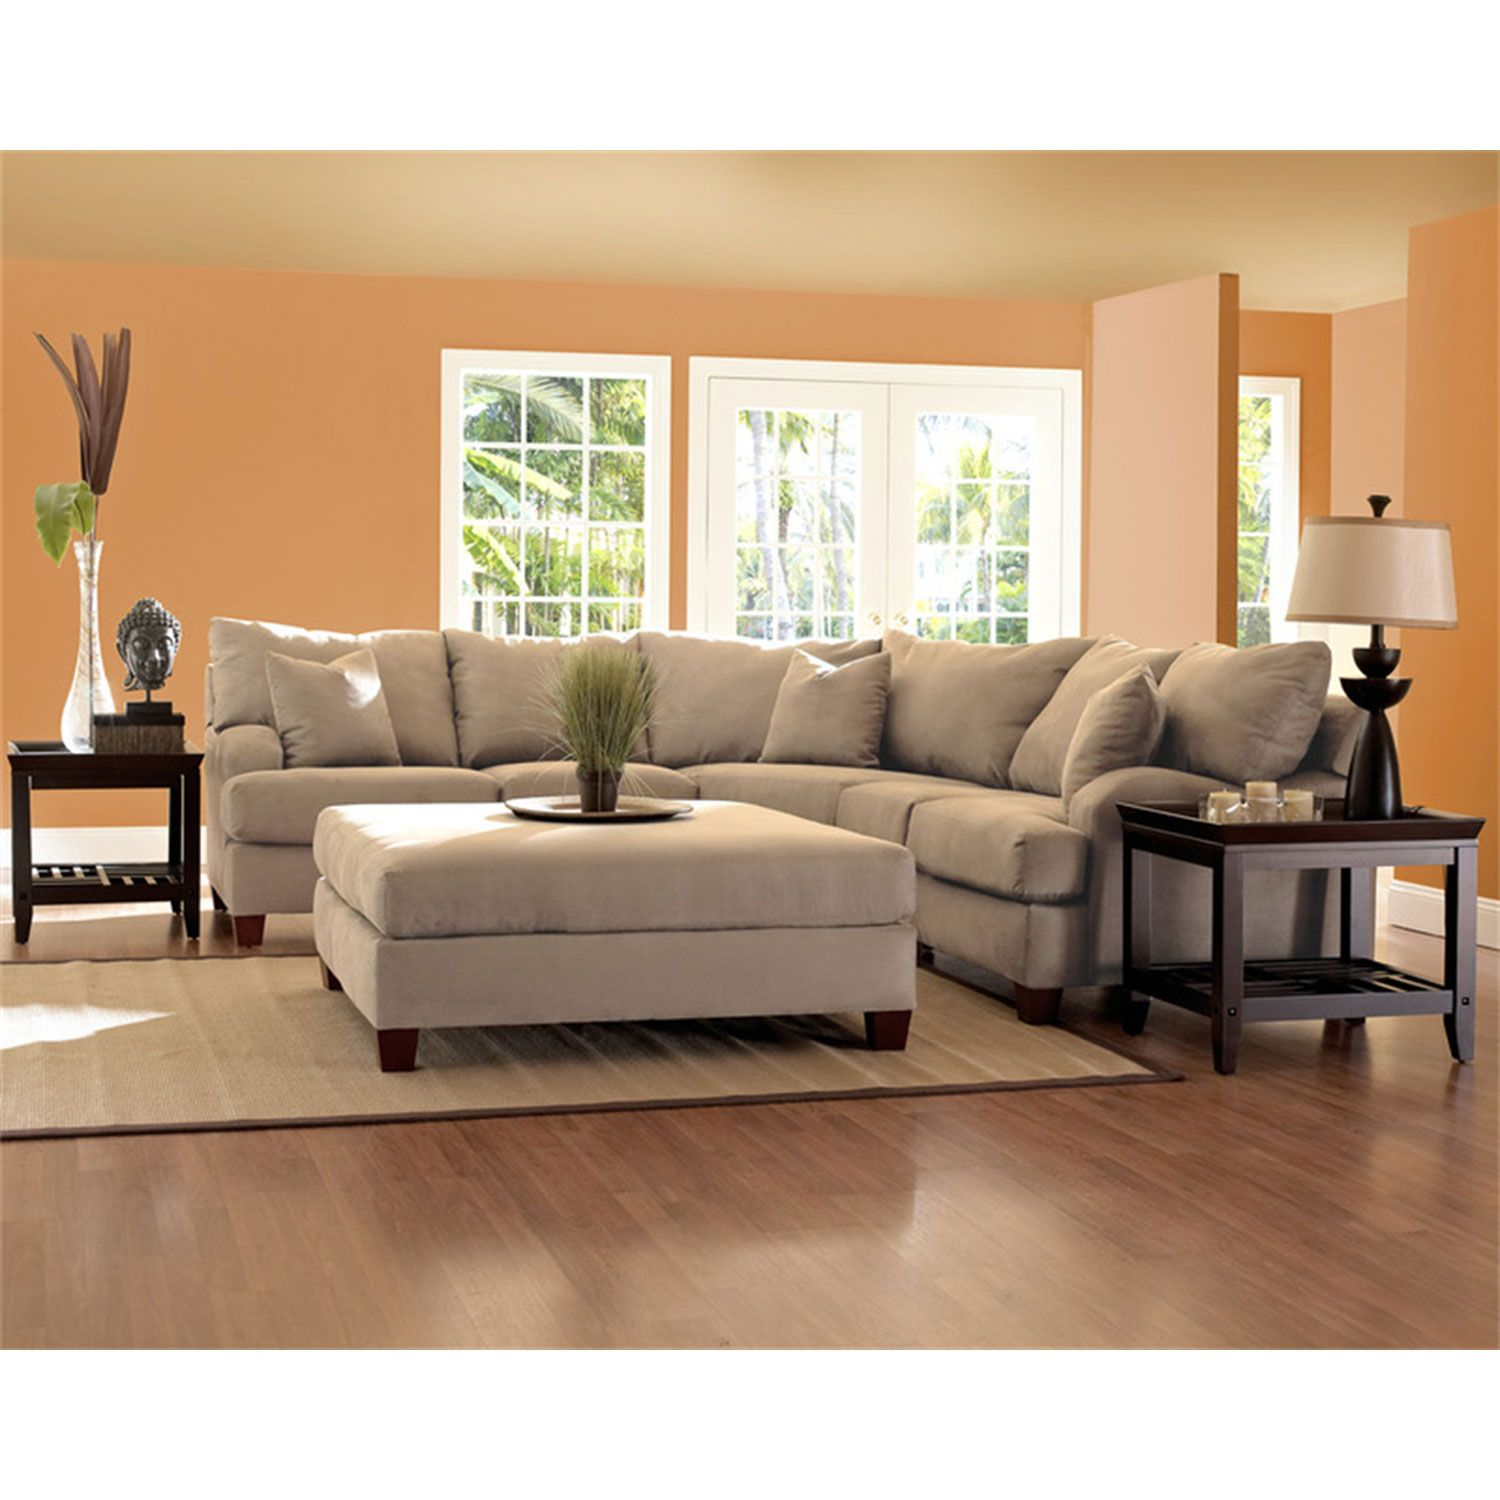 Canyon beige sectional sectional sofas sofas sectionals living room furniture